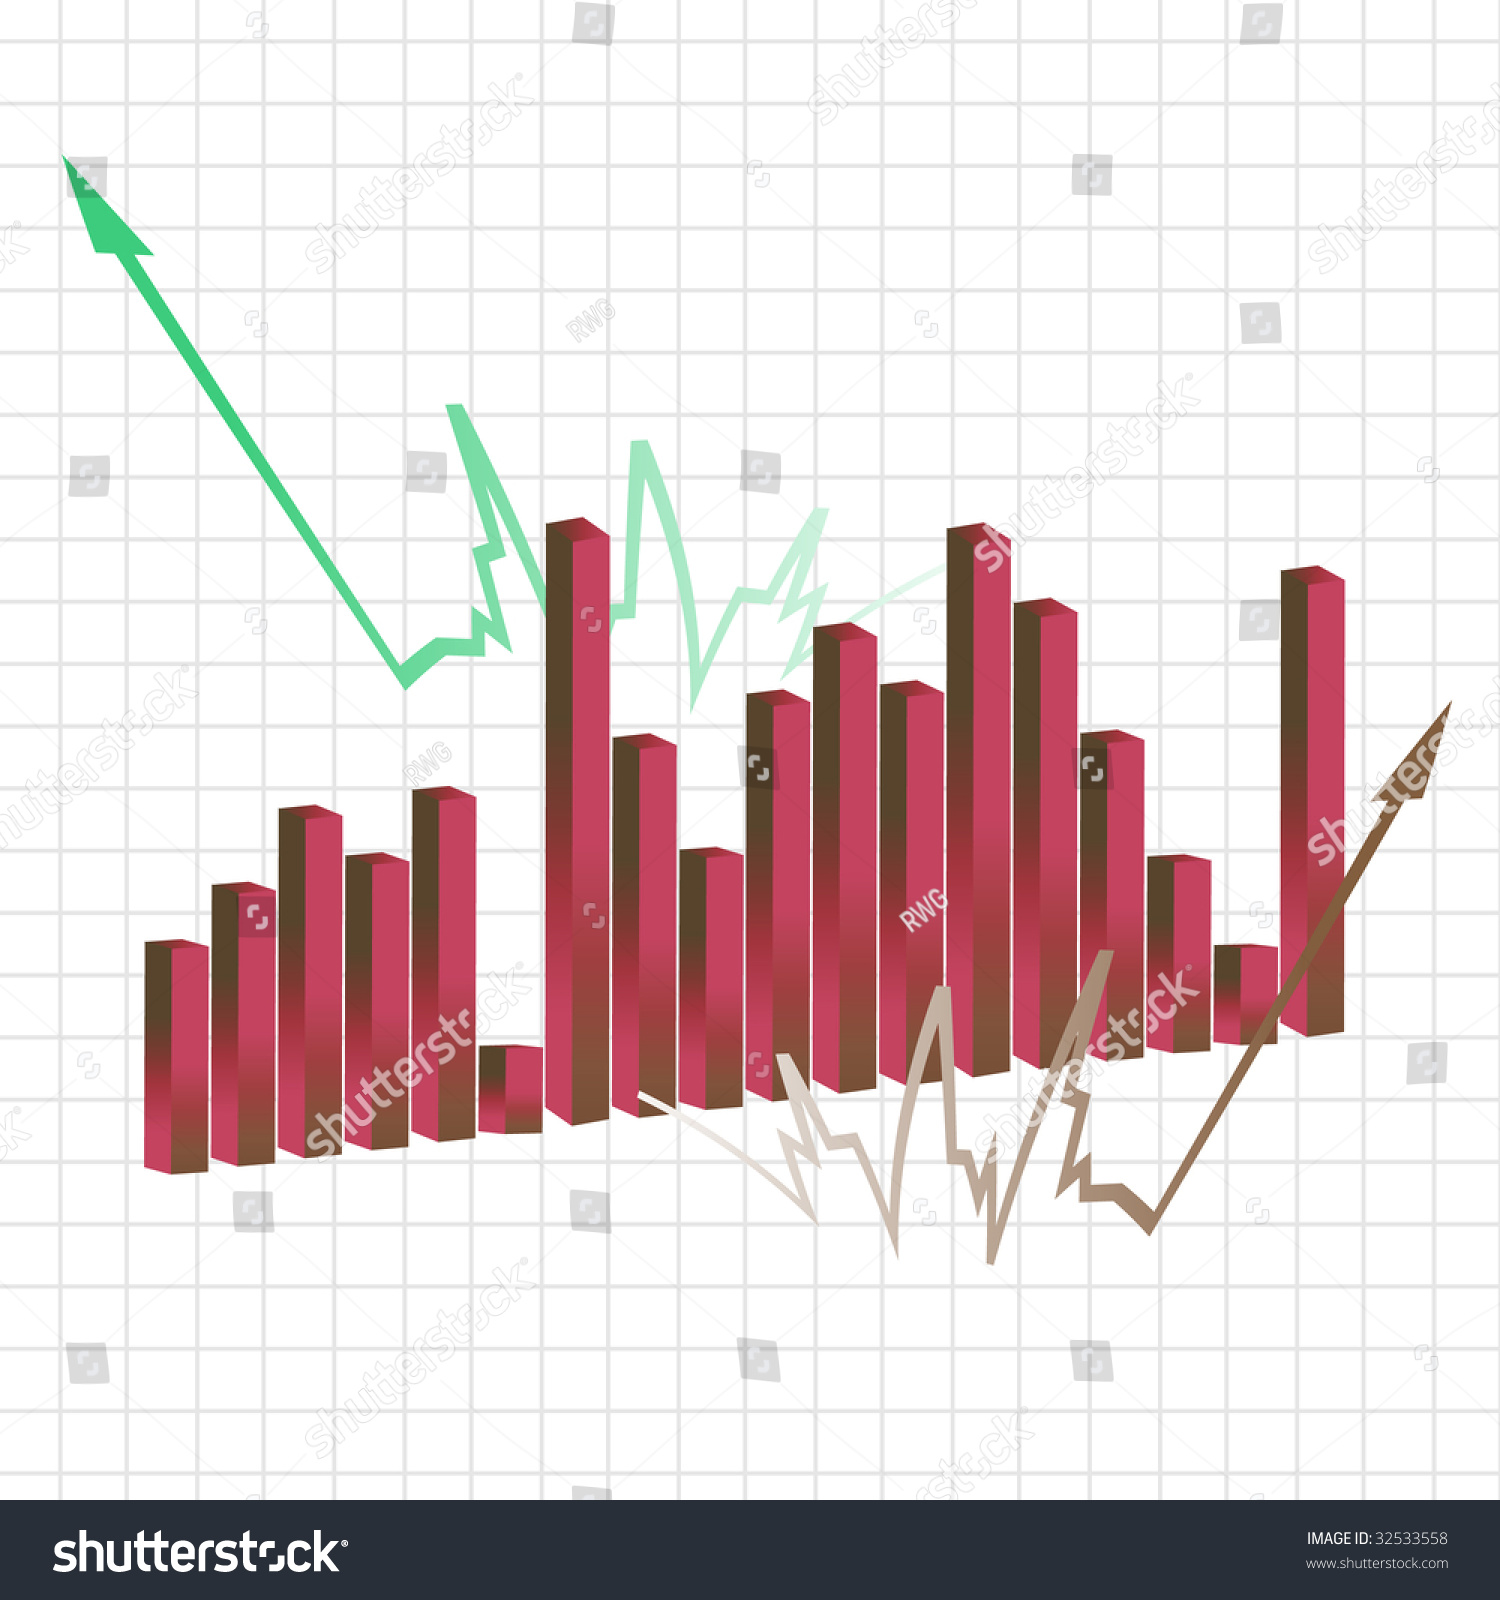 up and down graph of success or failure with white background - illustration